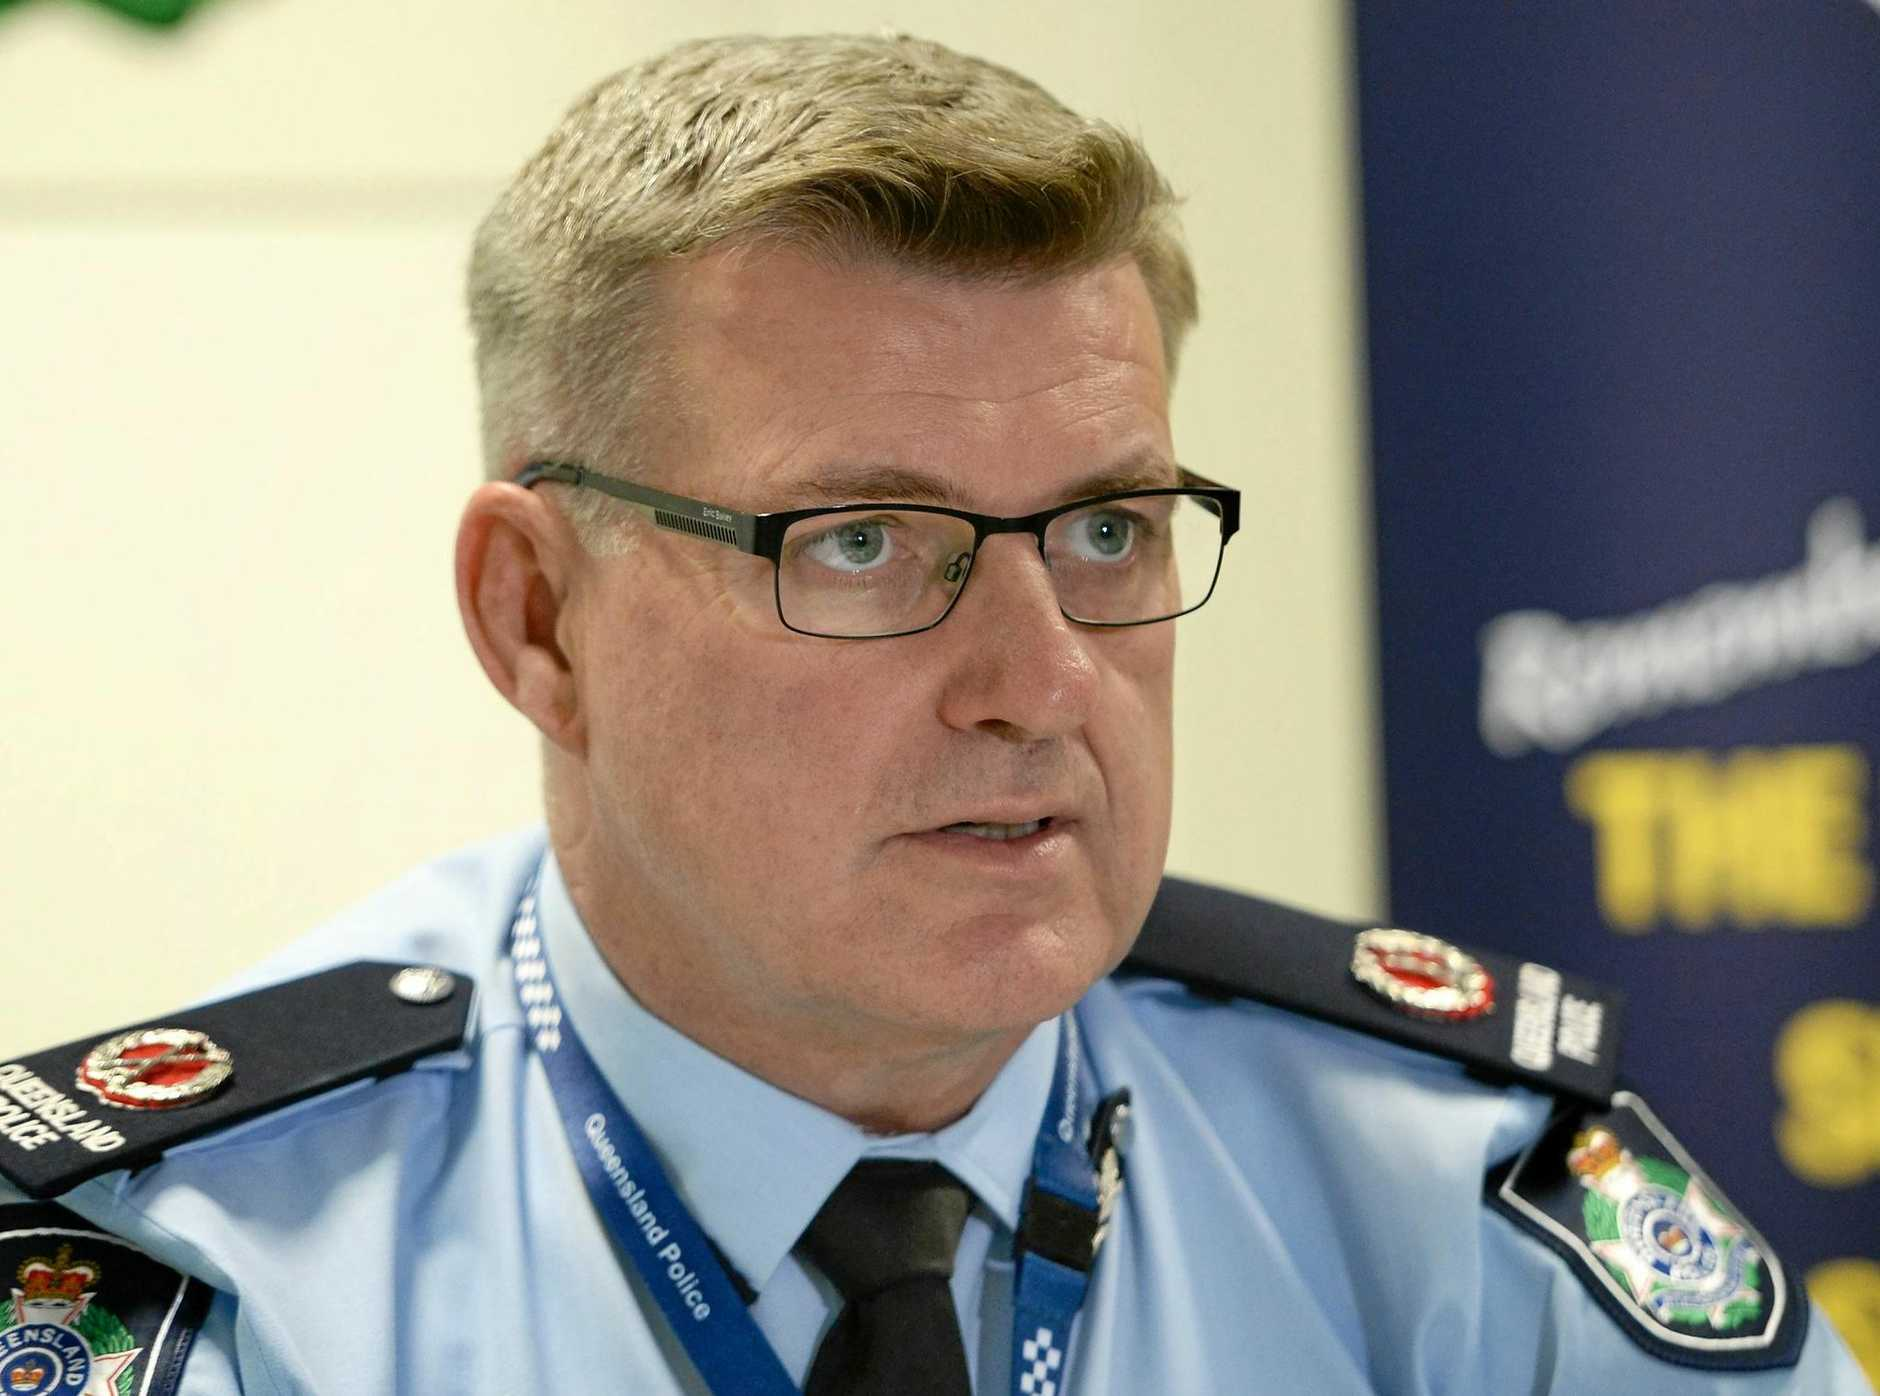 INVESTIGATION: Assistant Commissioner Mike Condon has been cleared of misconduct allegations.